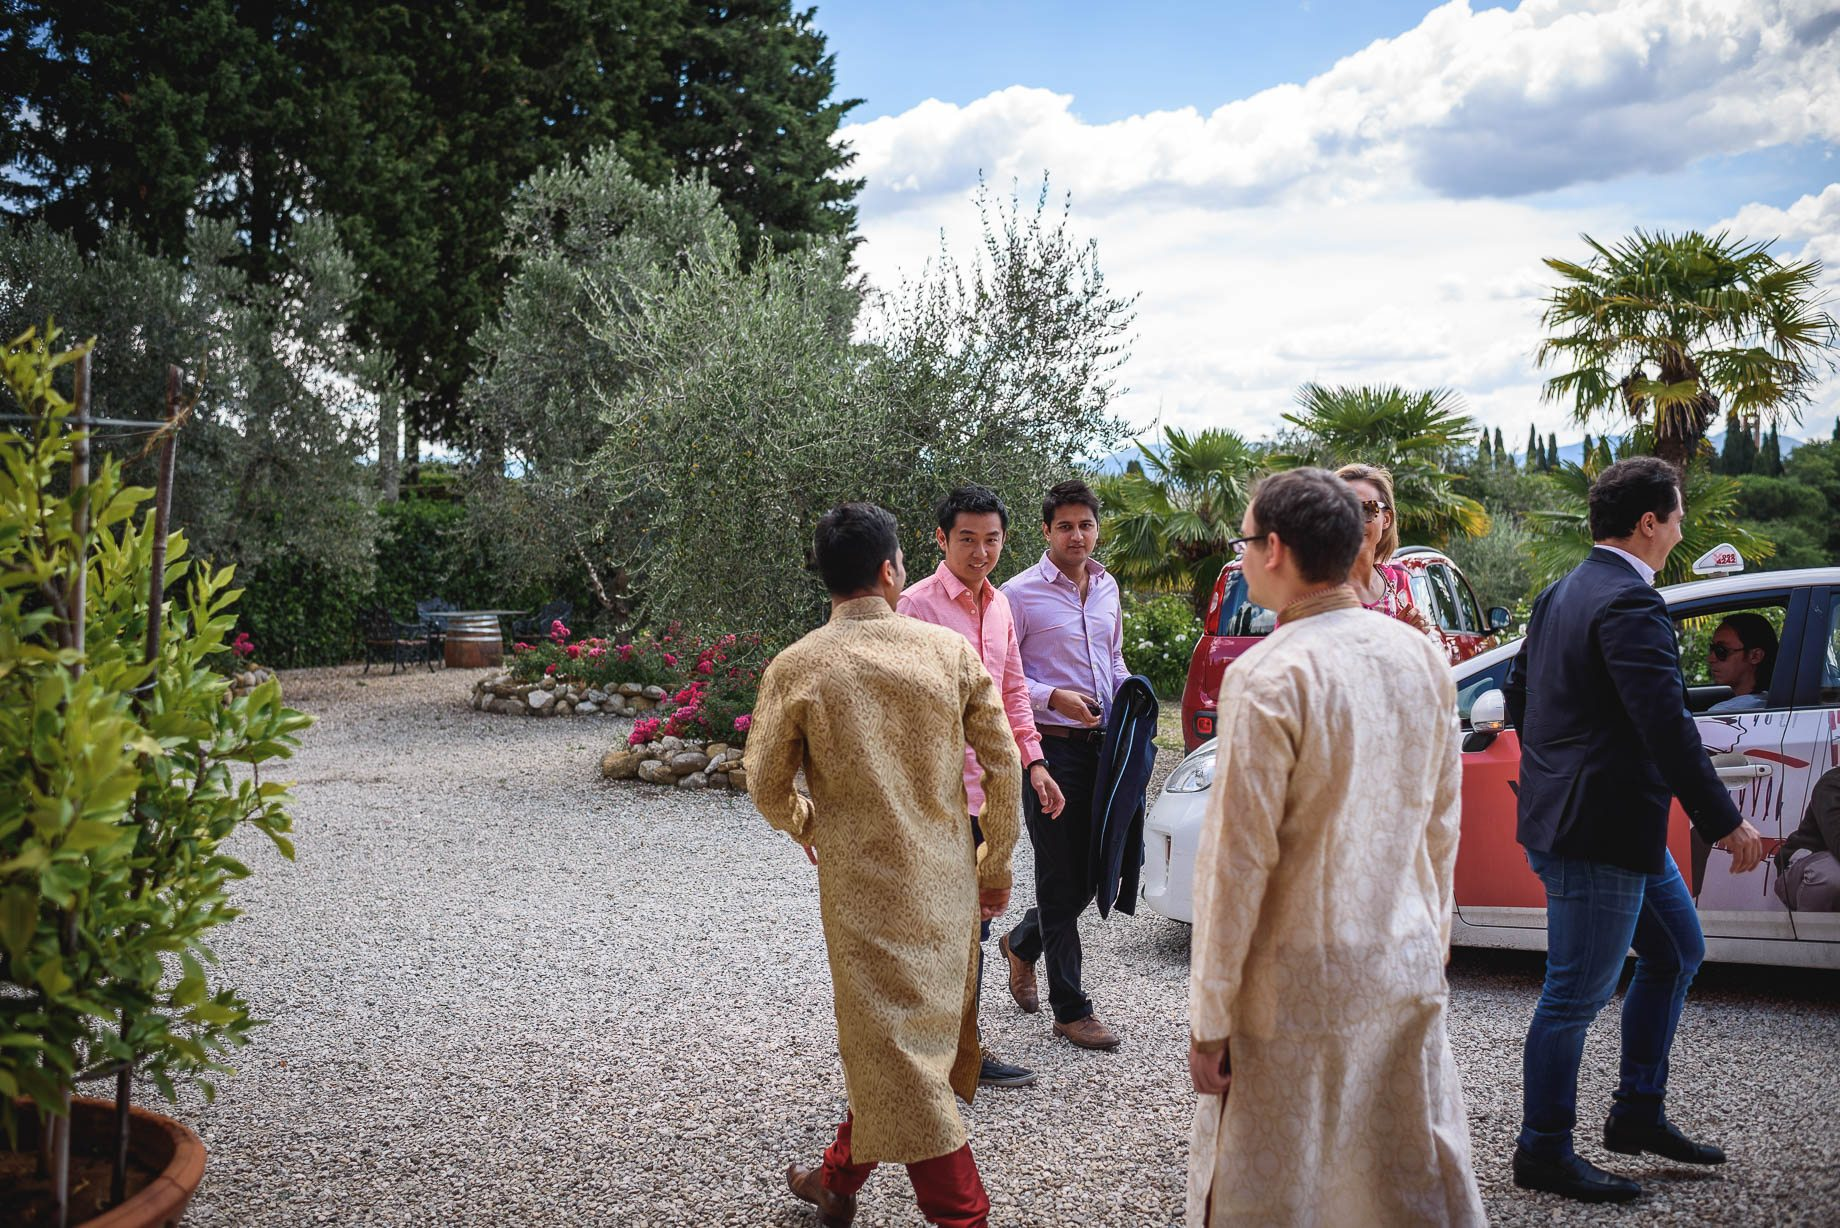 Tuscany wedding photography - Roisin and Moubin - Guy Collier Photography (43 of 194)